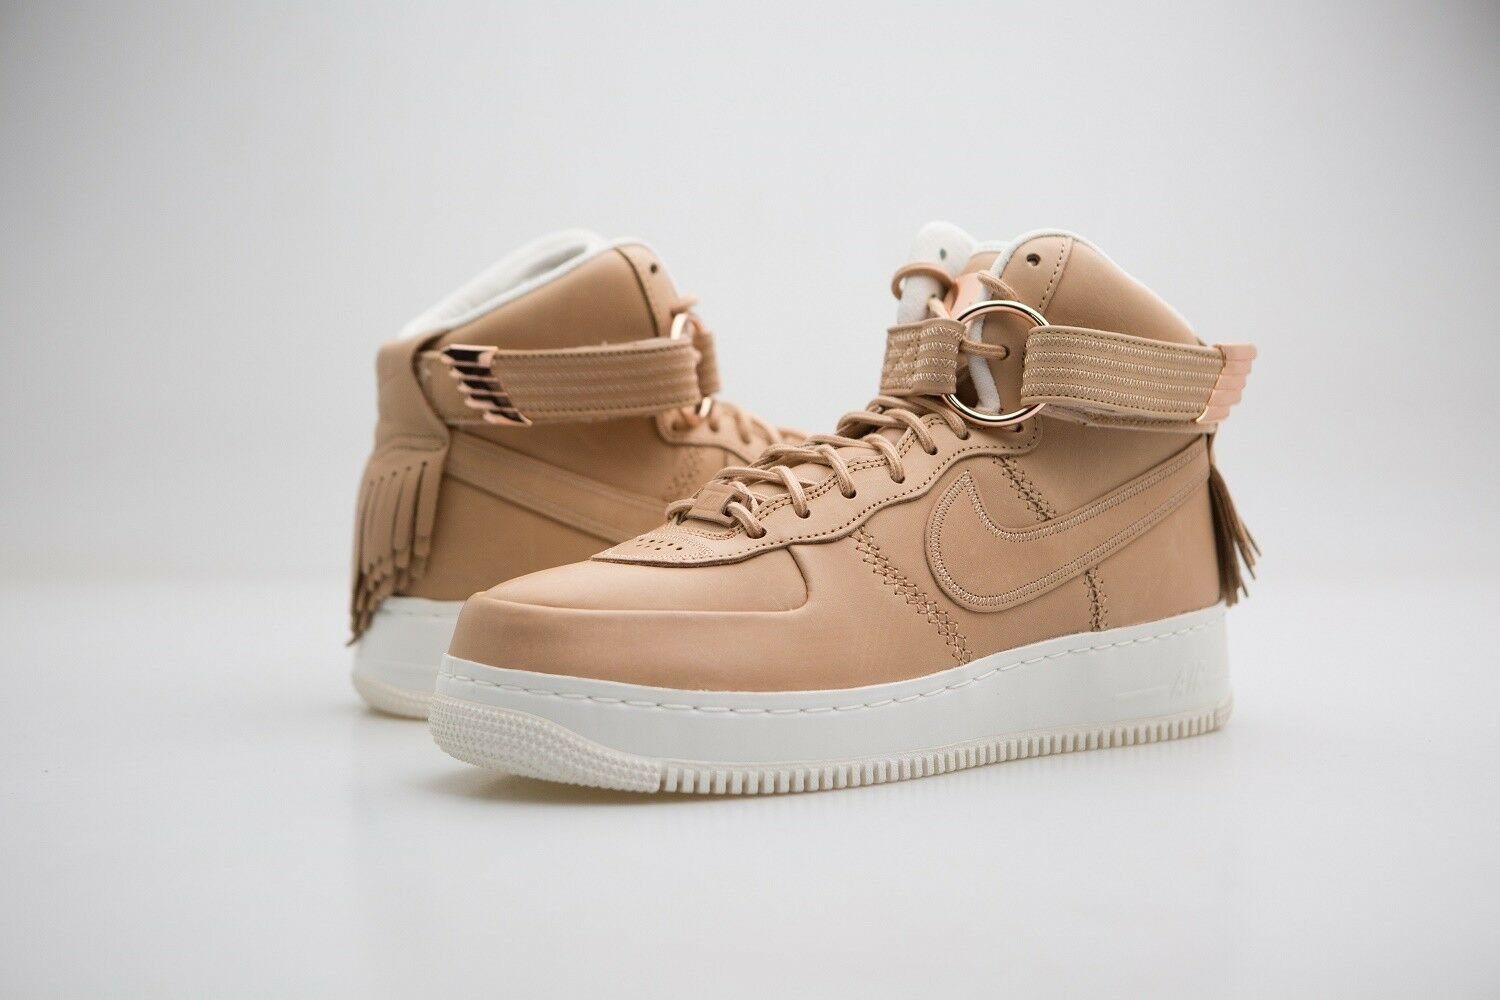 919473-200 nike air force di alto e uomini vachetta tan